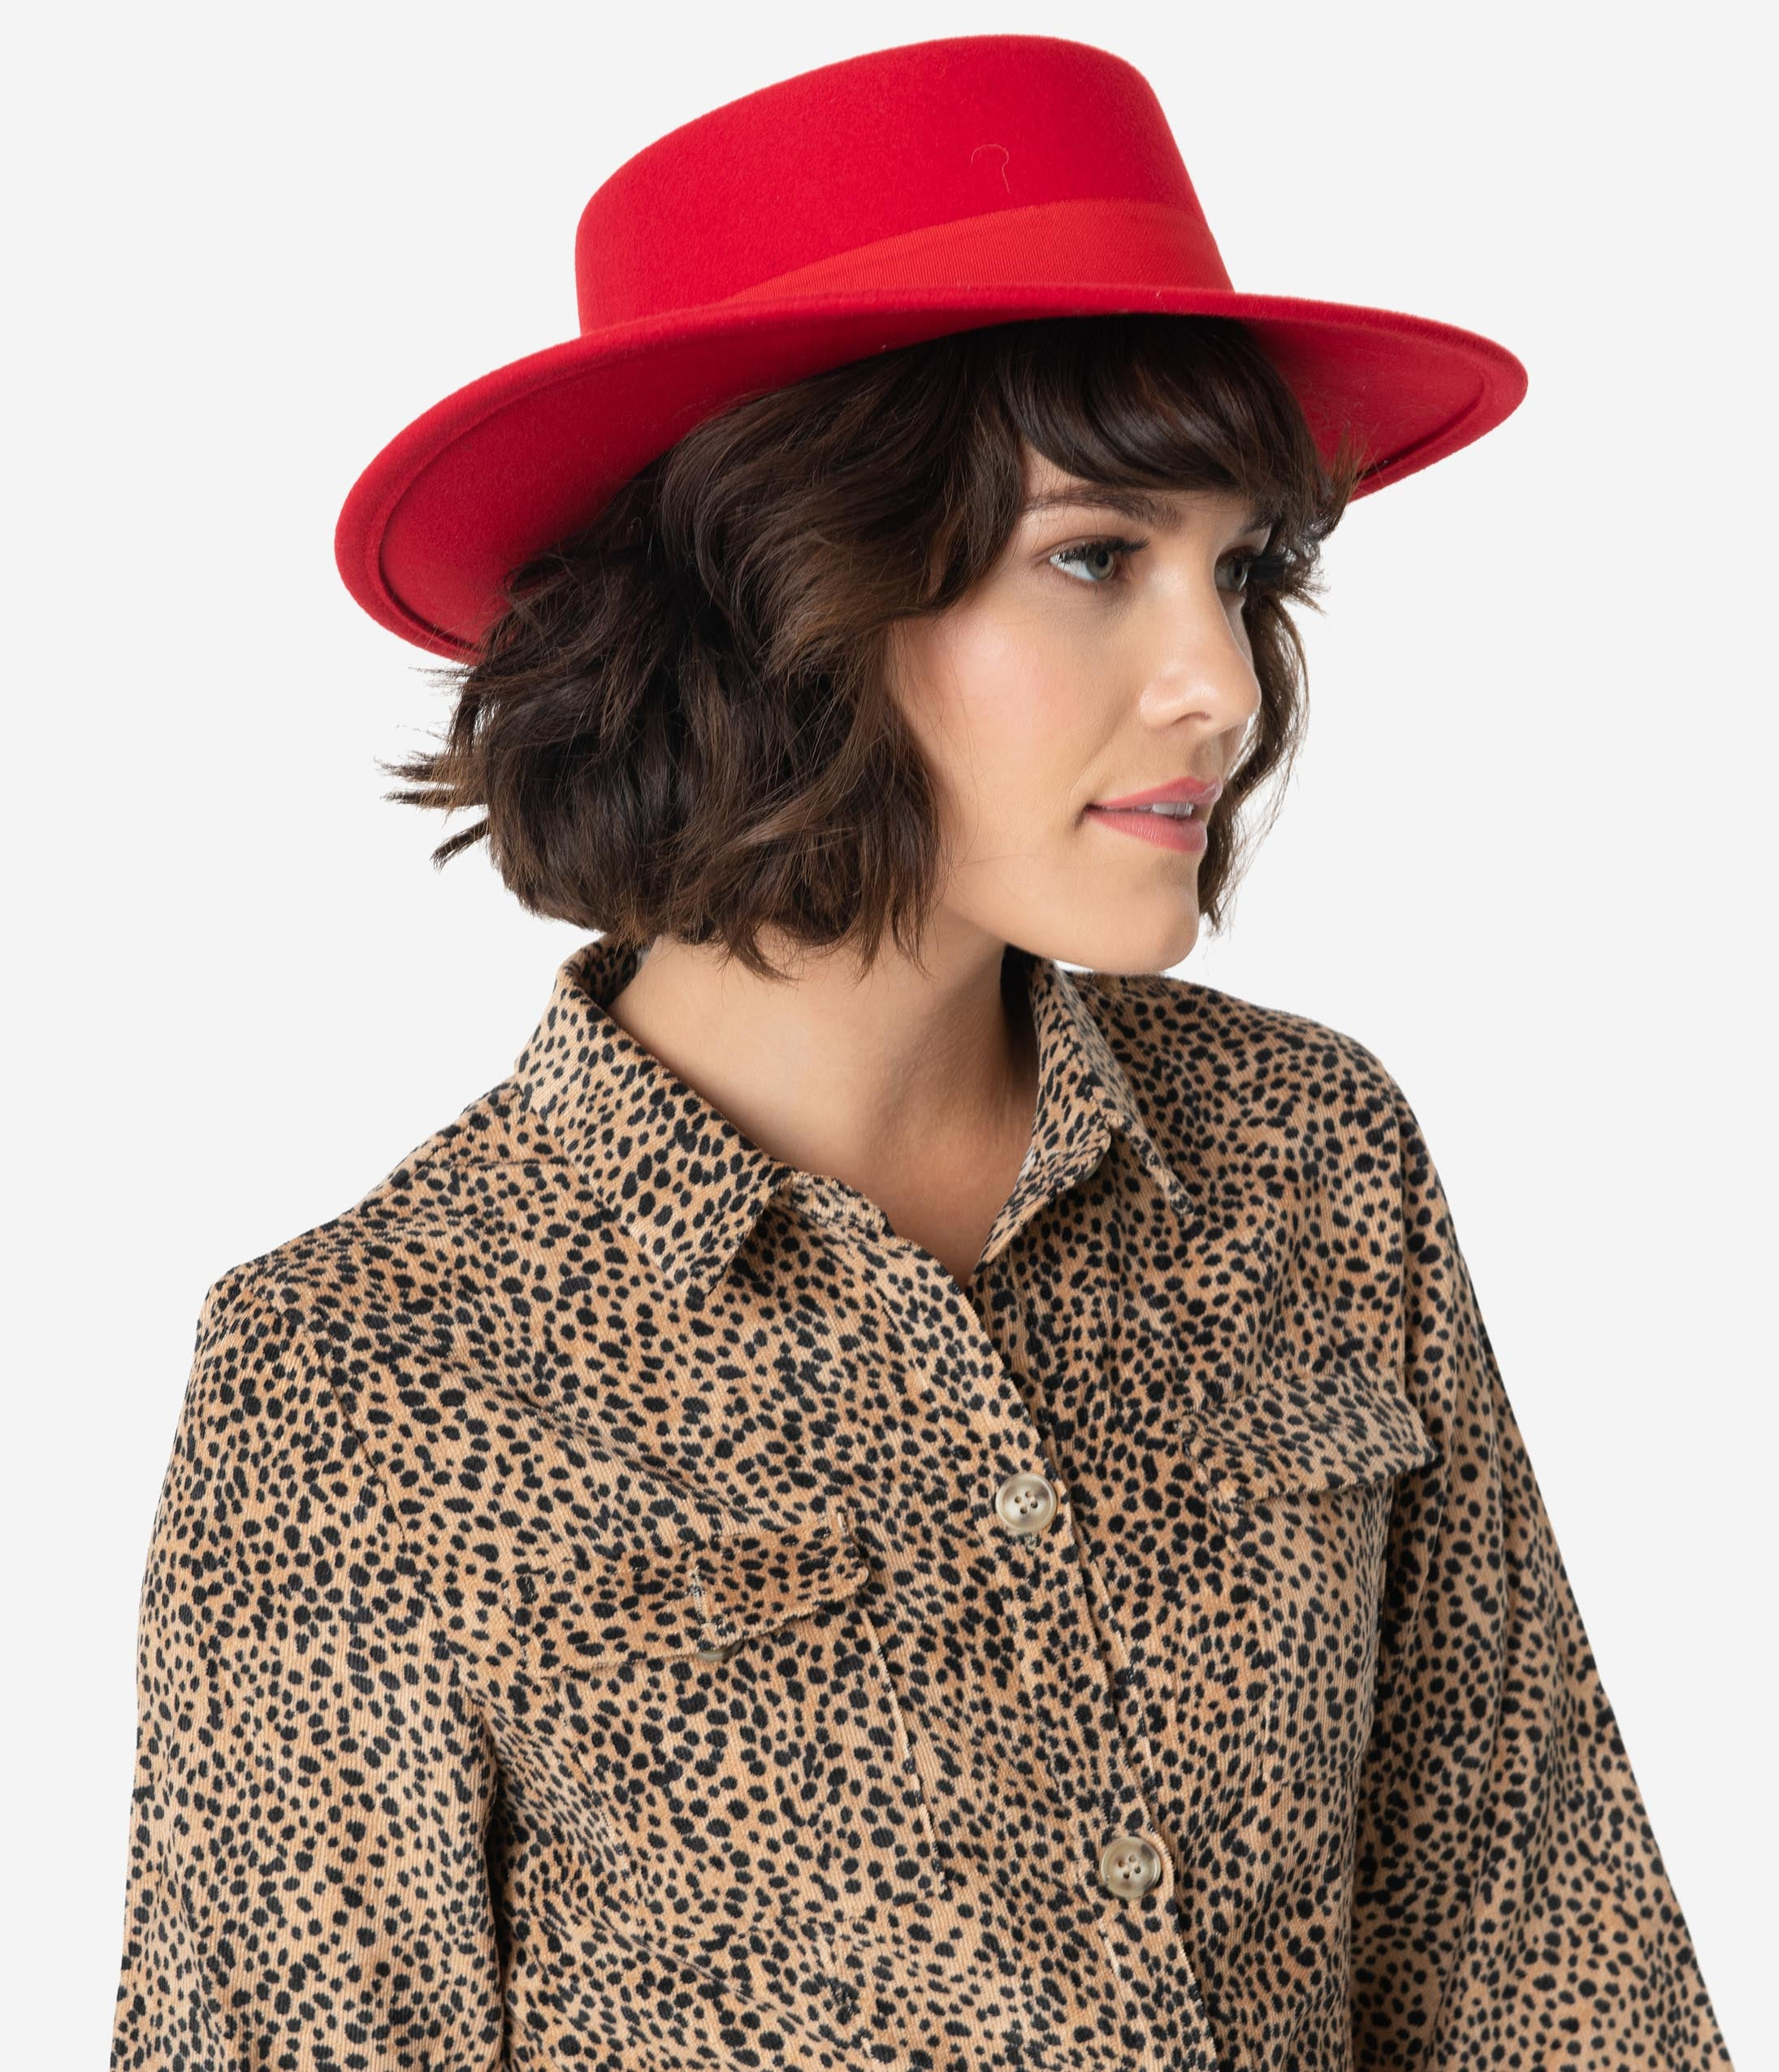 1950s Women's Hat Styles & History Red Wool Felt Bolero Hat $42.00 AT vintagedancer.com